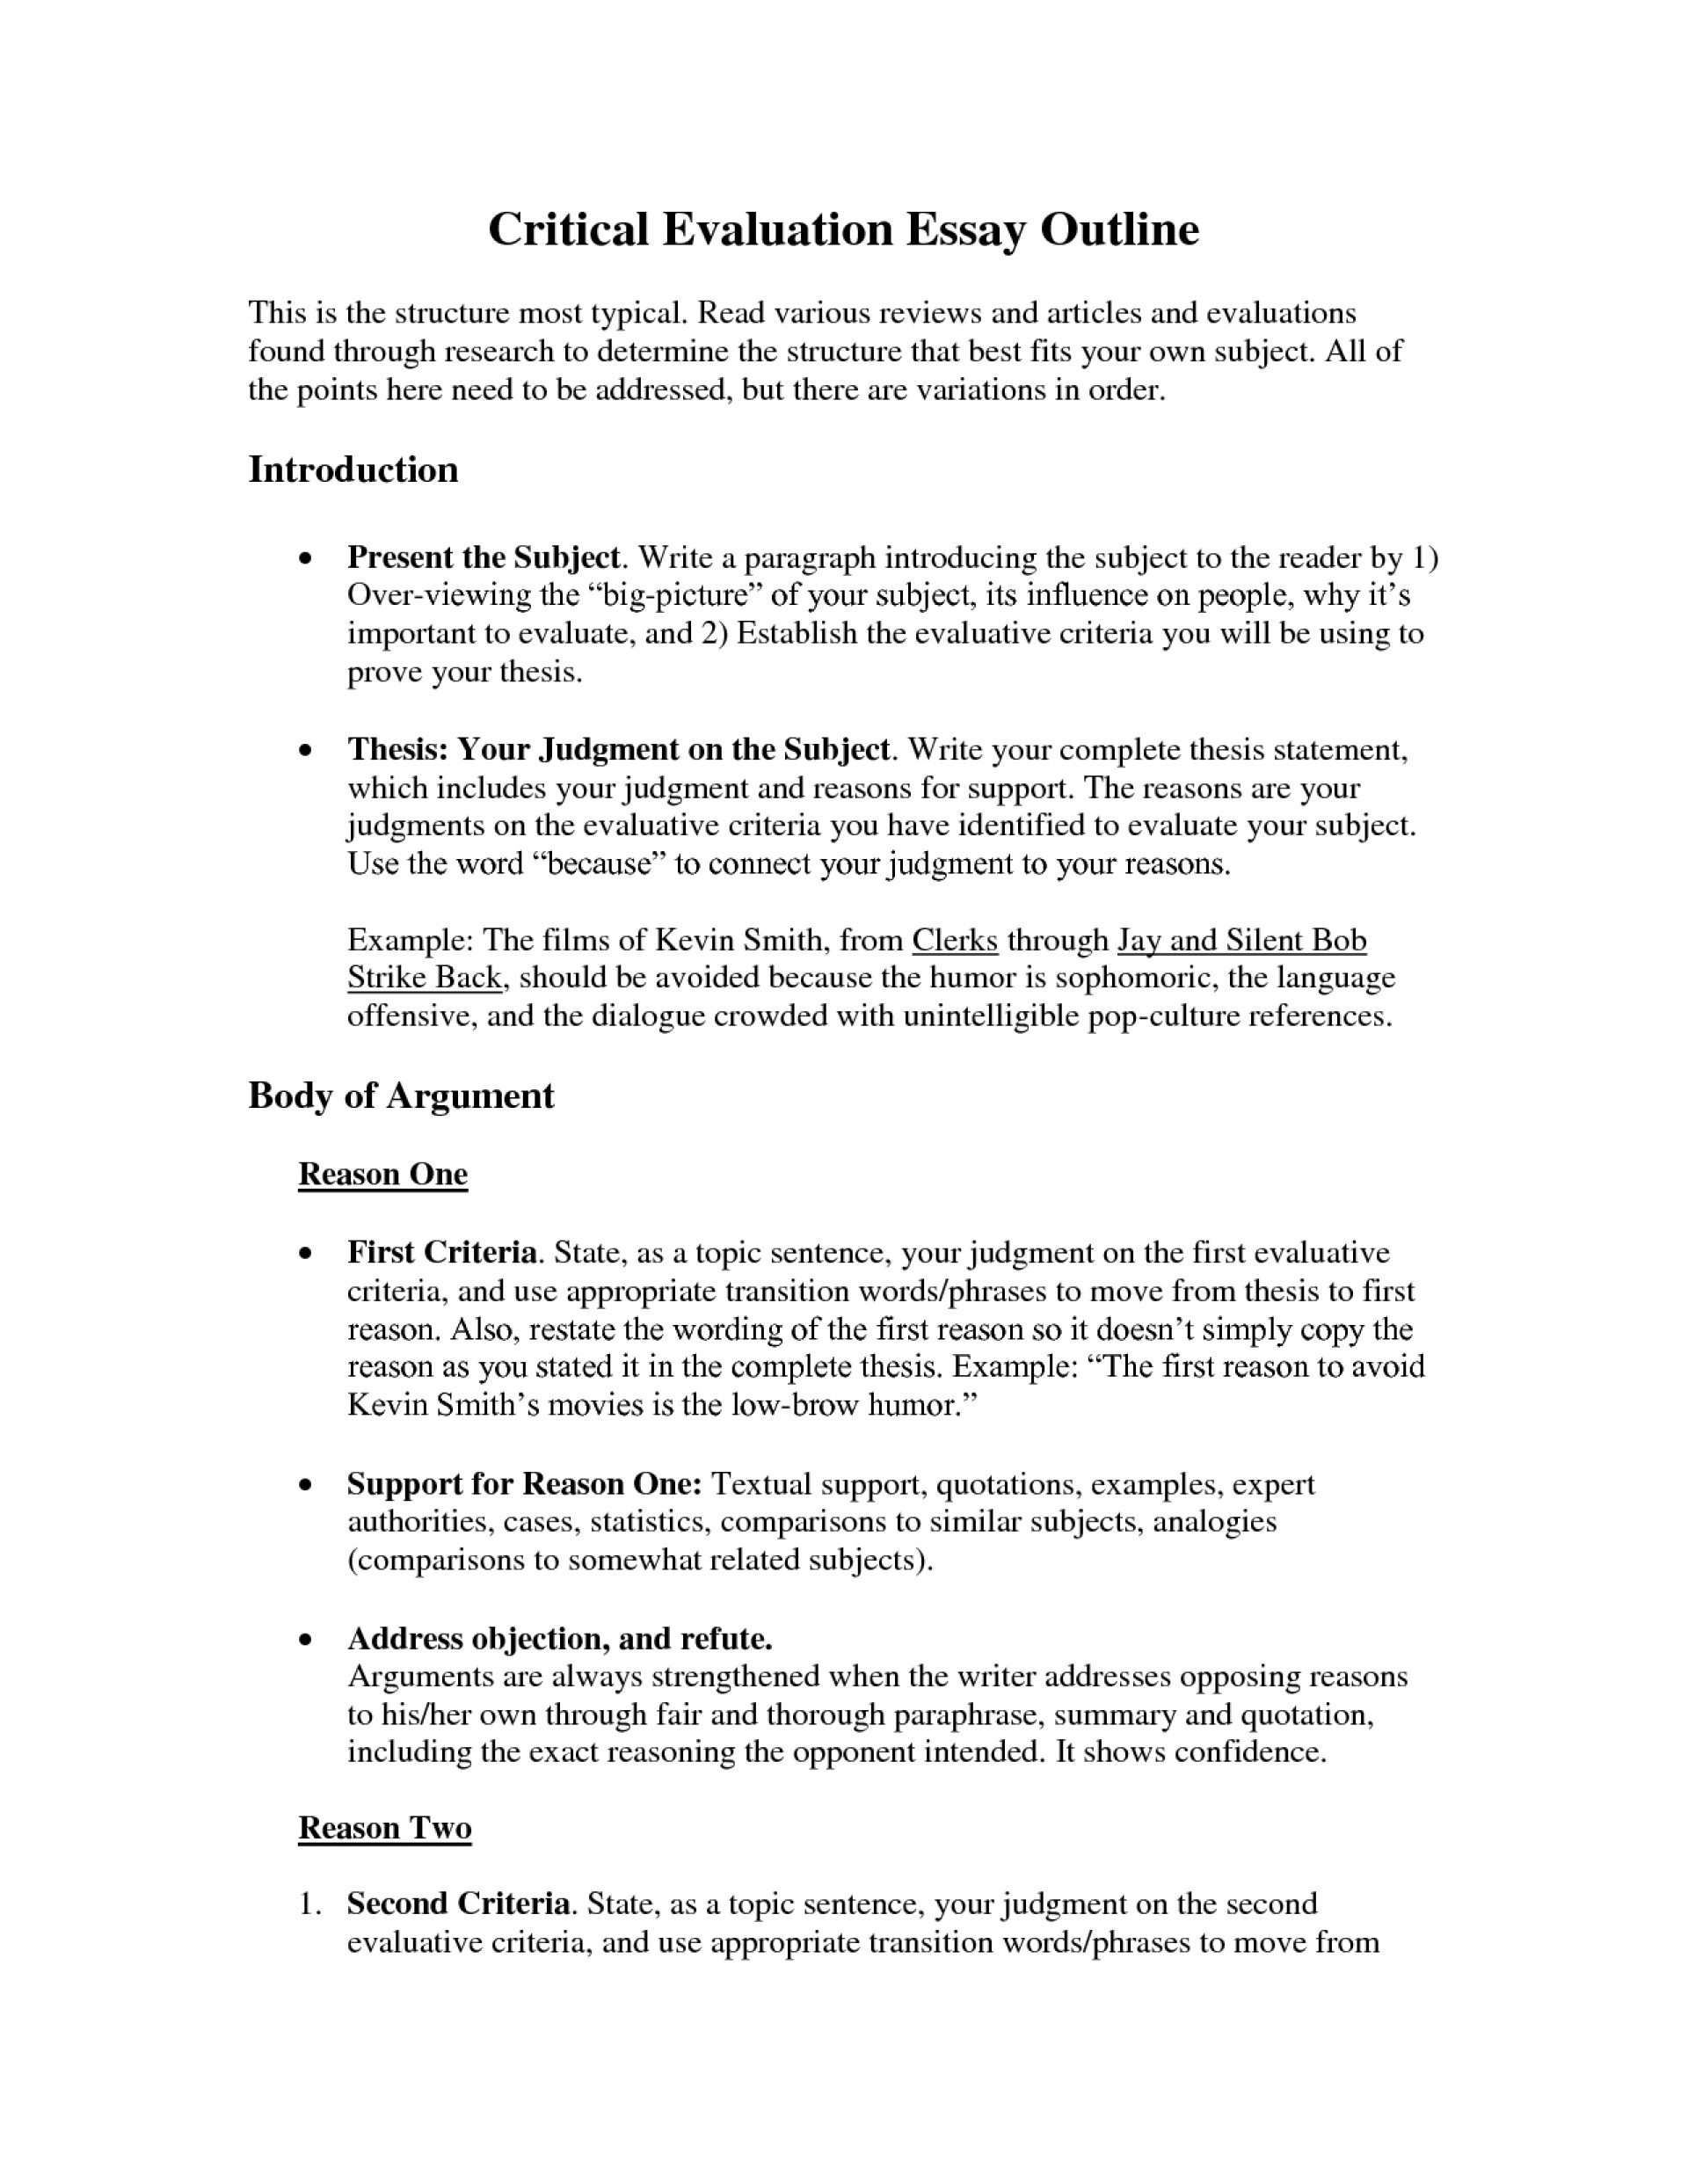 004 Critical Evaluation Essay Example Sample L Incredible Unique Topics On Horror Movies Definition 1920